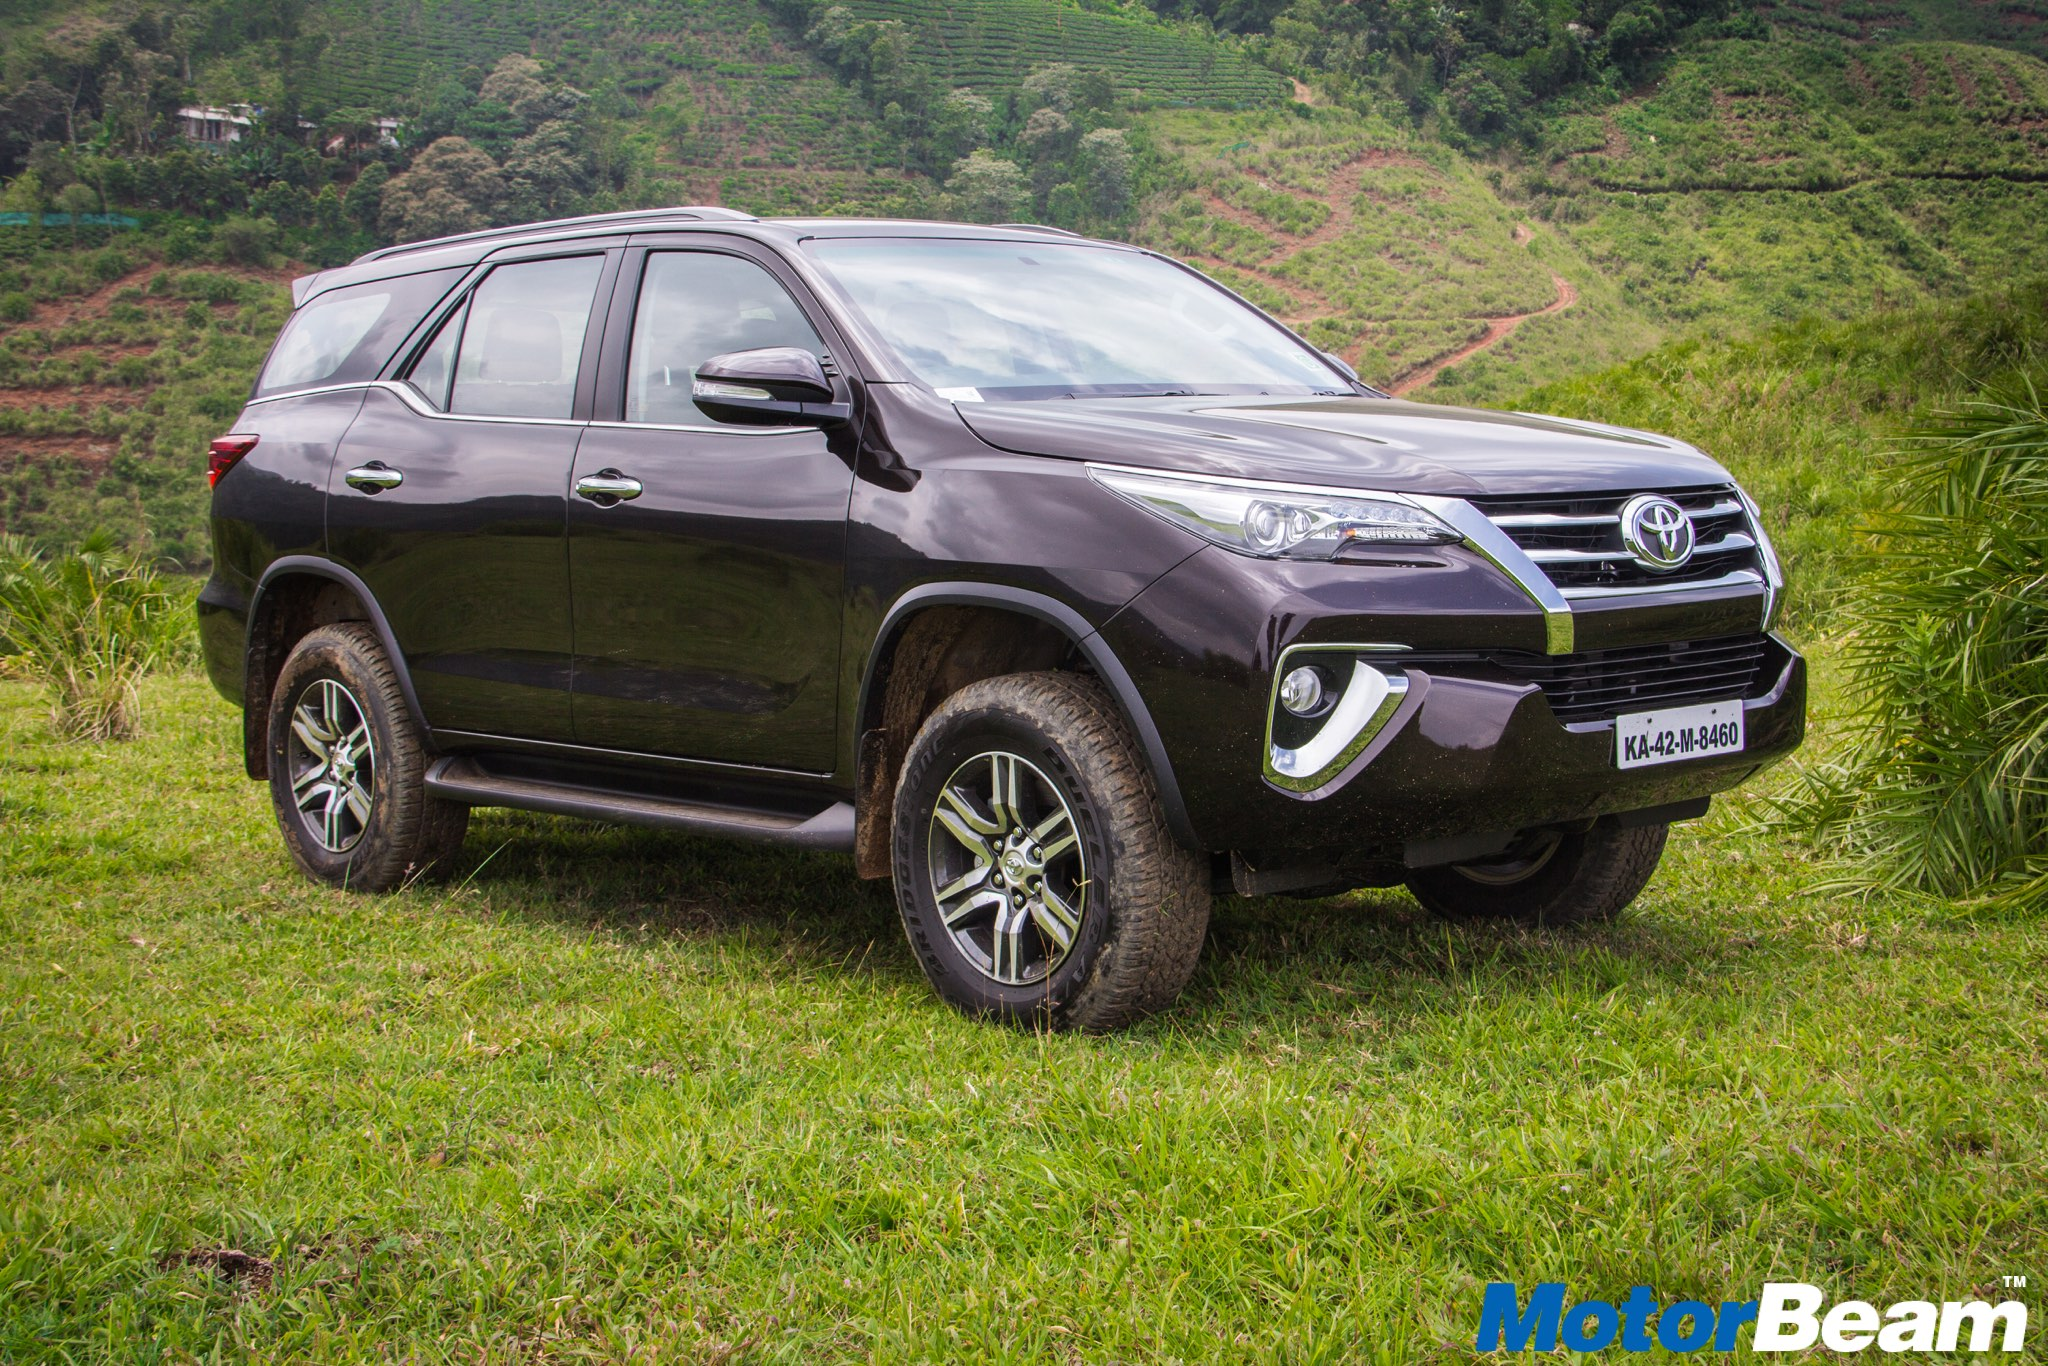 2017 Toyota Fortuner Image Gallery - 2017 Toyota Fortuner India , HD Wallpaper & Backgrounds